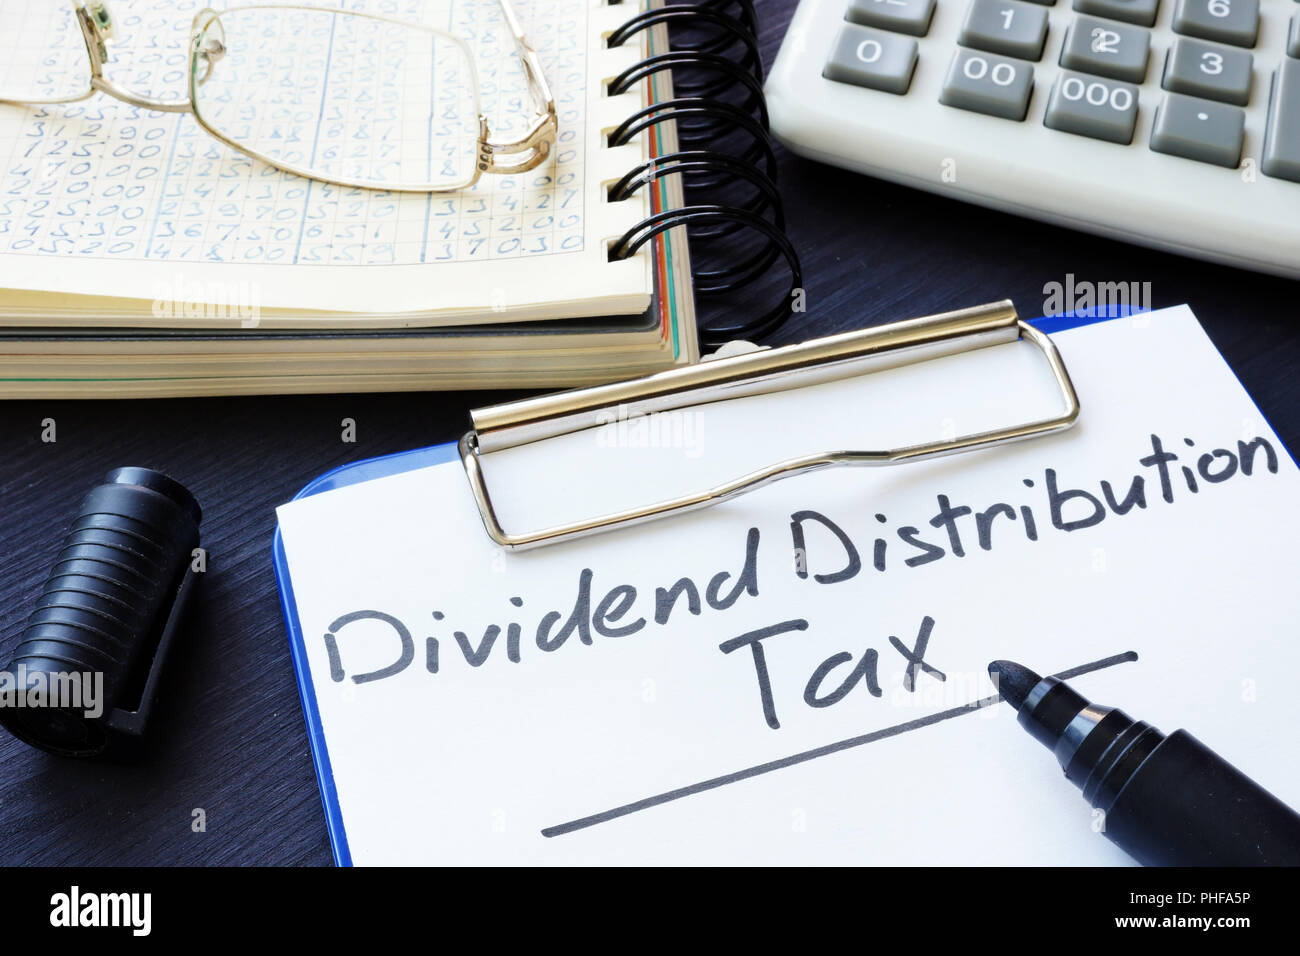 Dividend Distribution Tax DDT written on a sheet of paper. - Stock Image